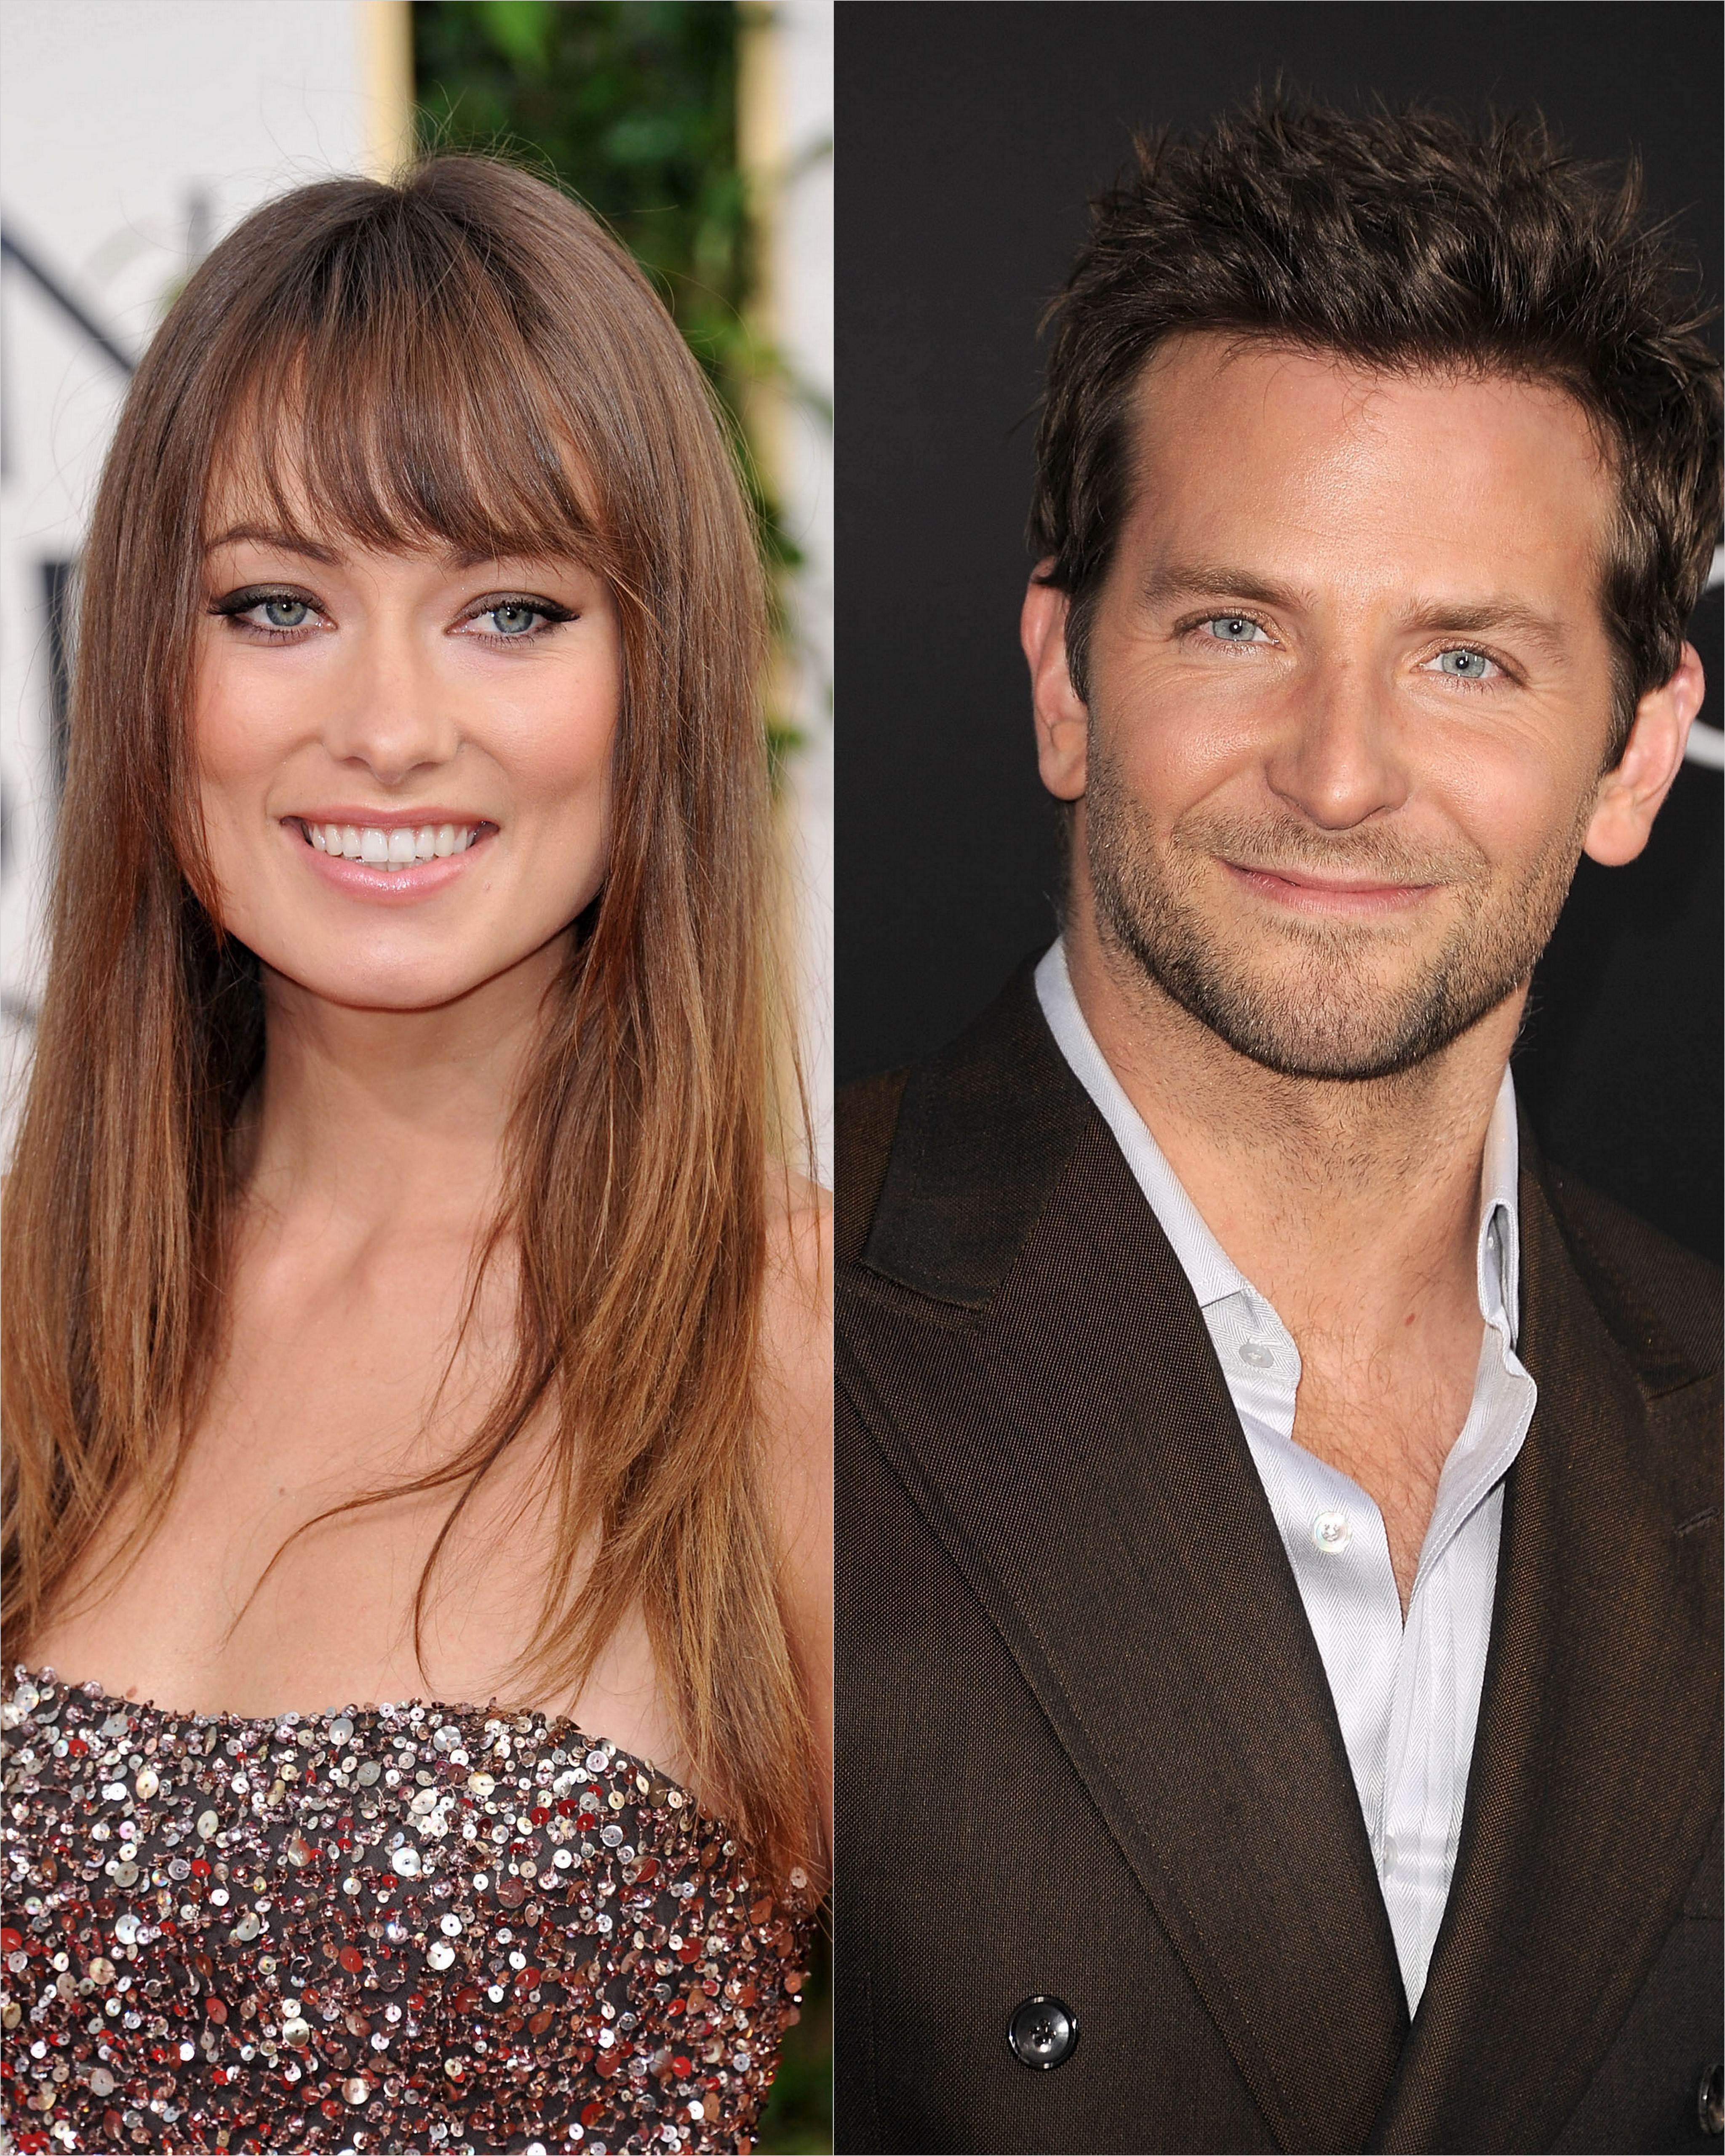 Olivia Wilde and Bradley Cooper collage